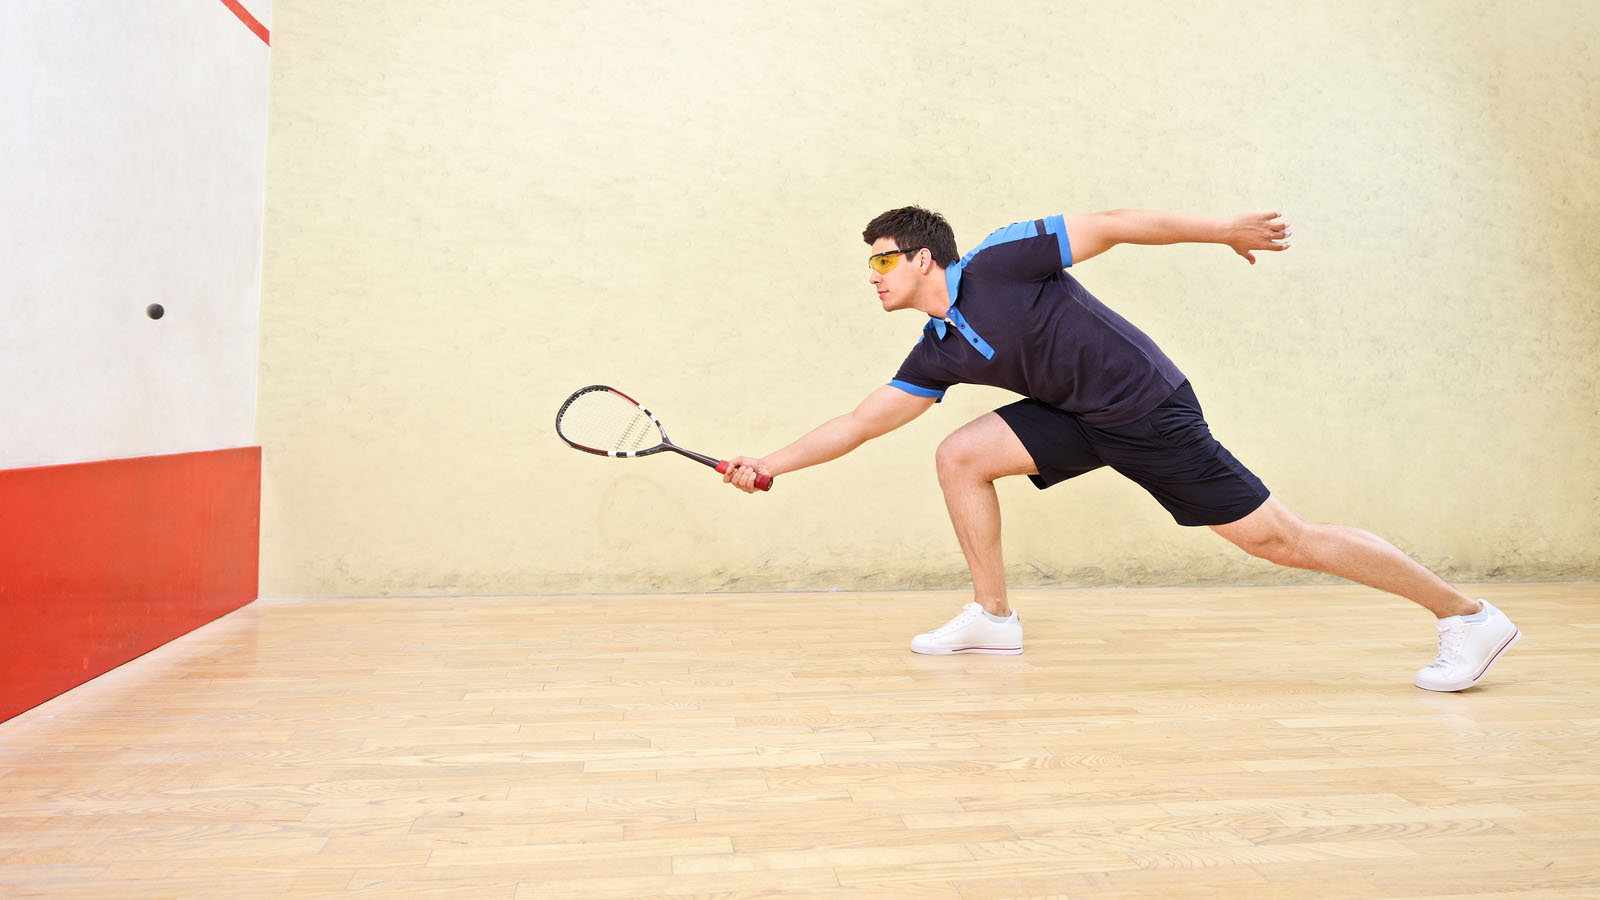 Solo Squash Drills – How to Play Squash Alone